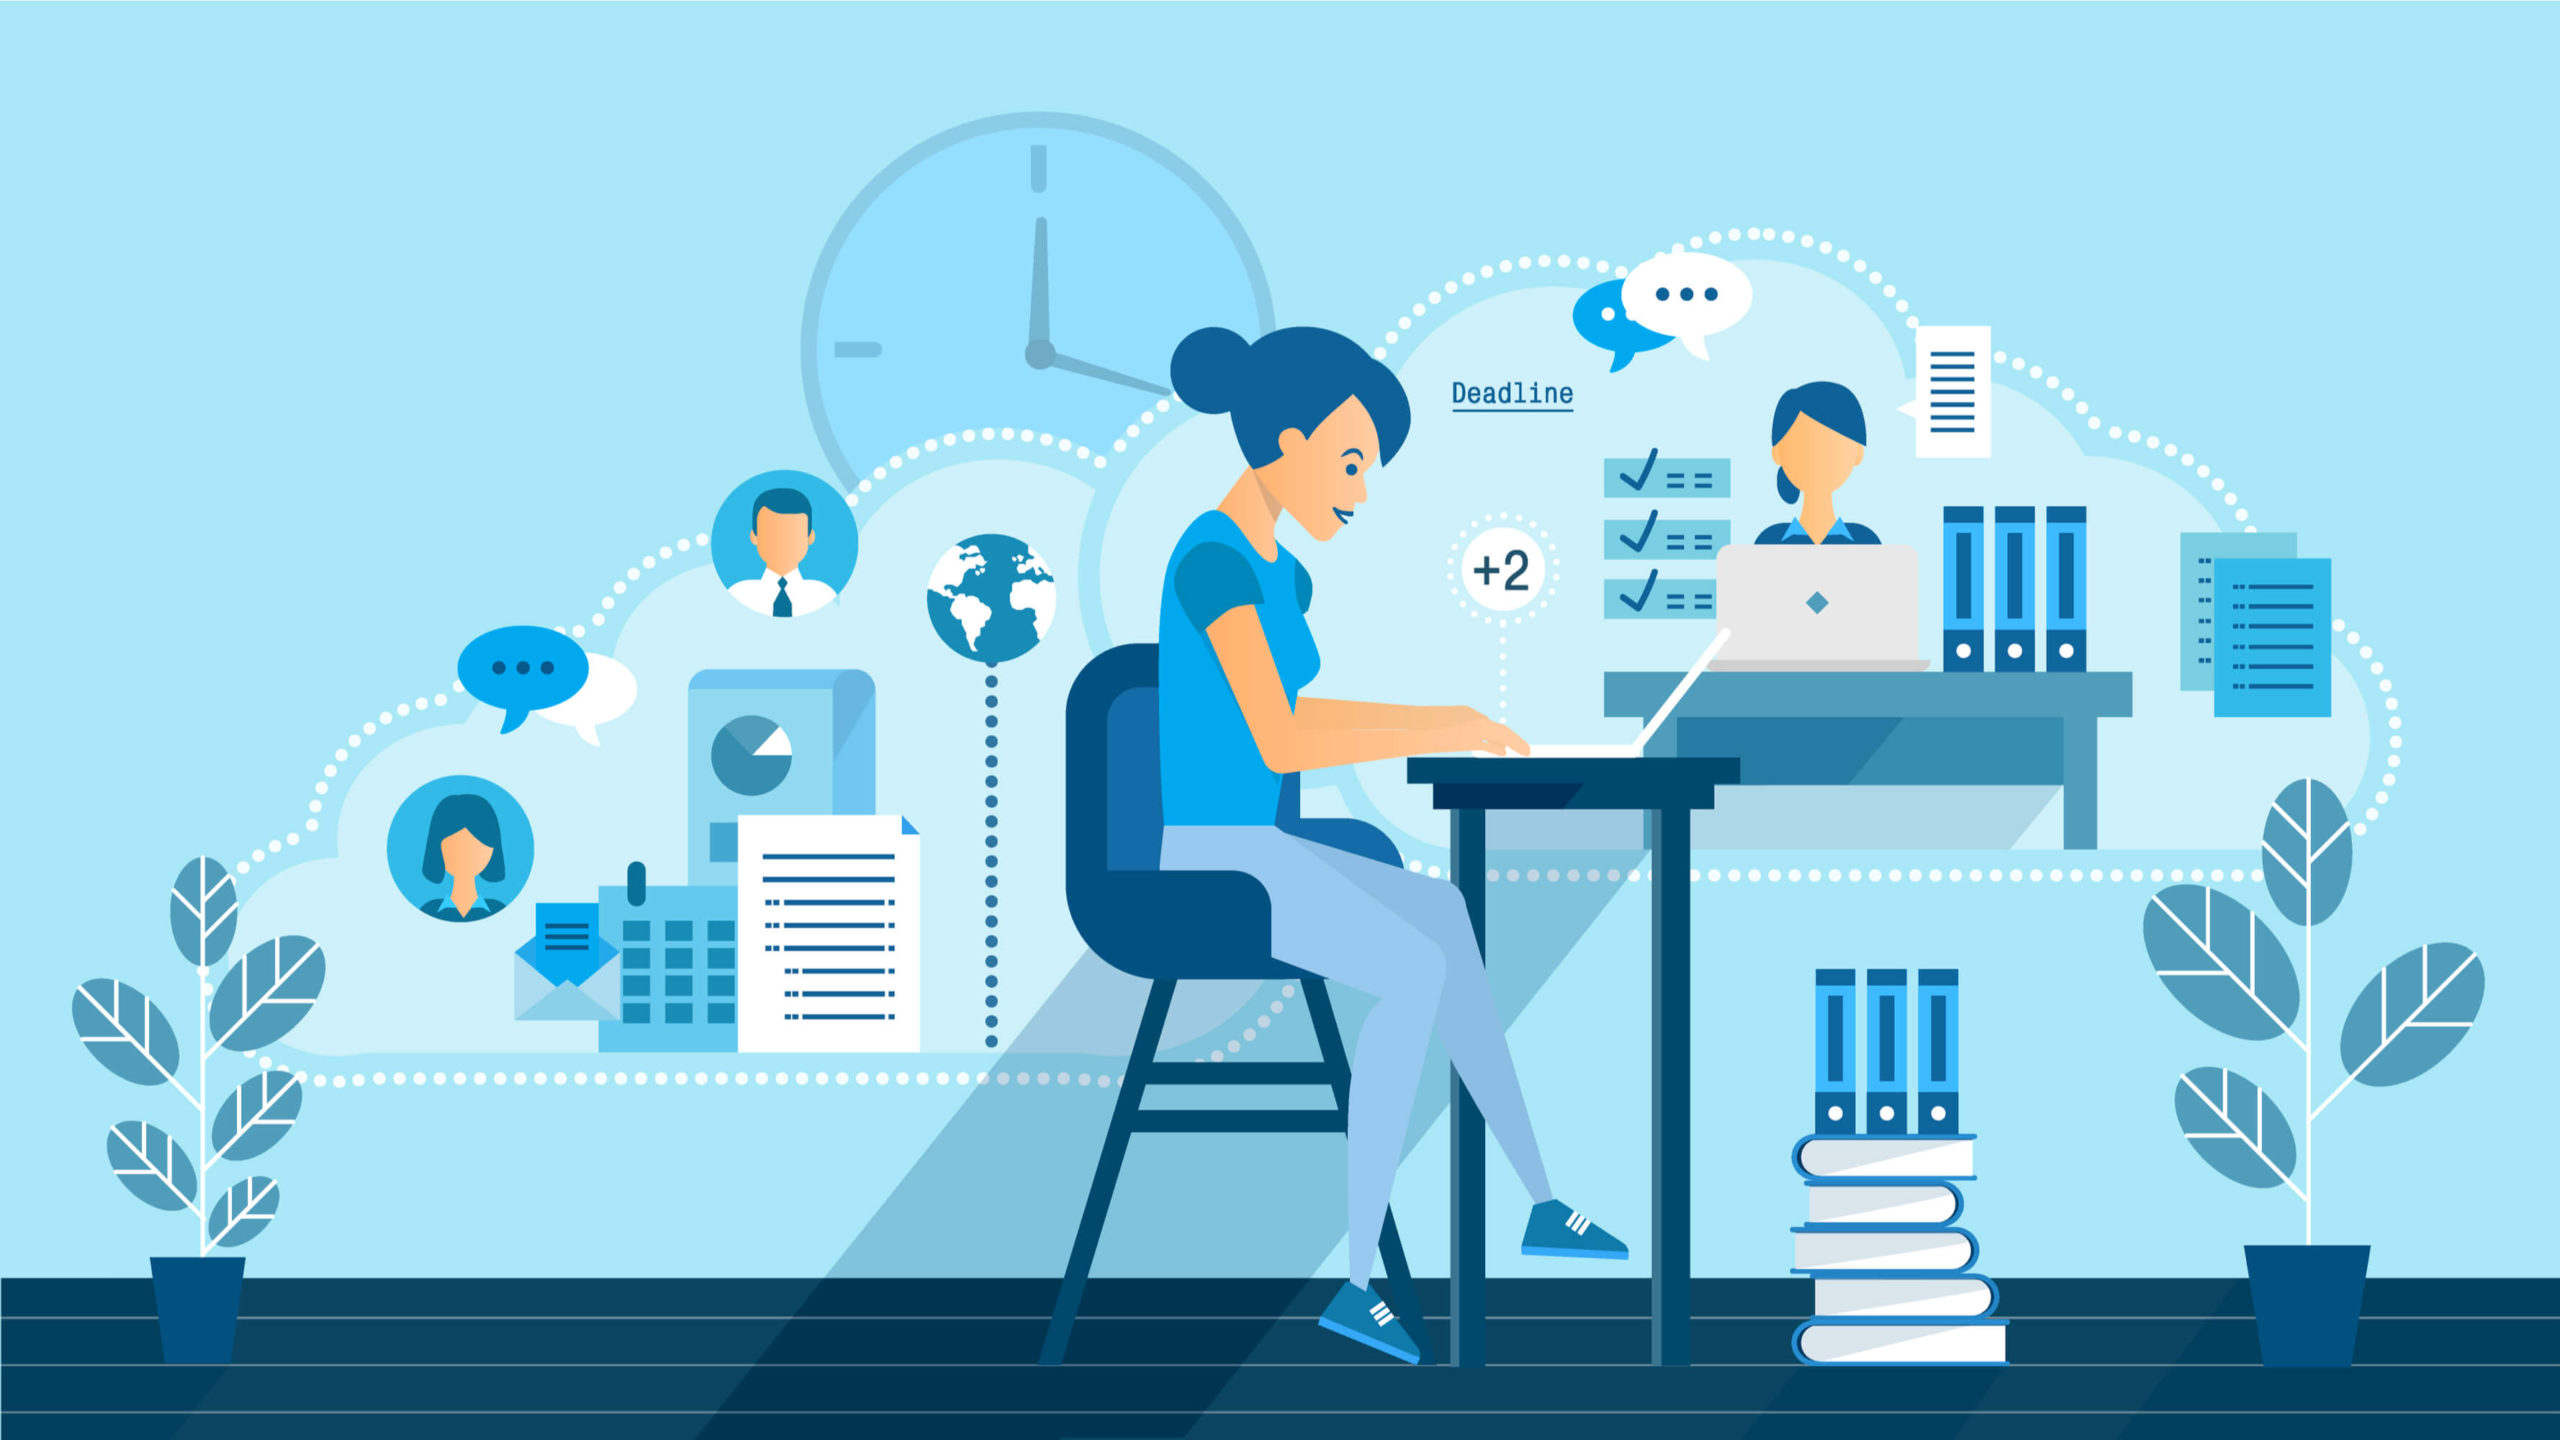 remote working, remote project management tips, remote access, remote project management issues